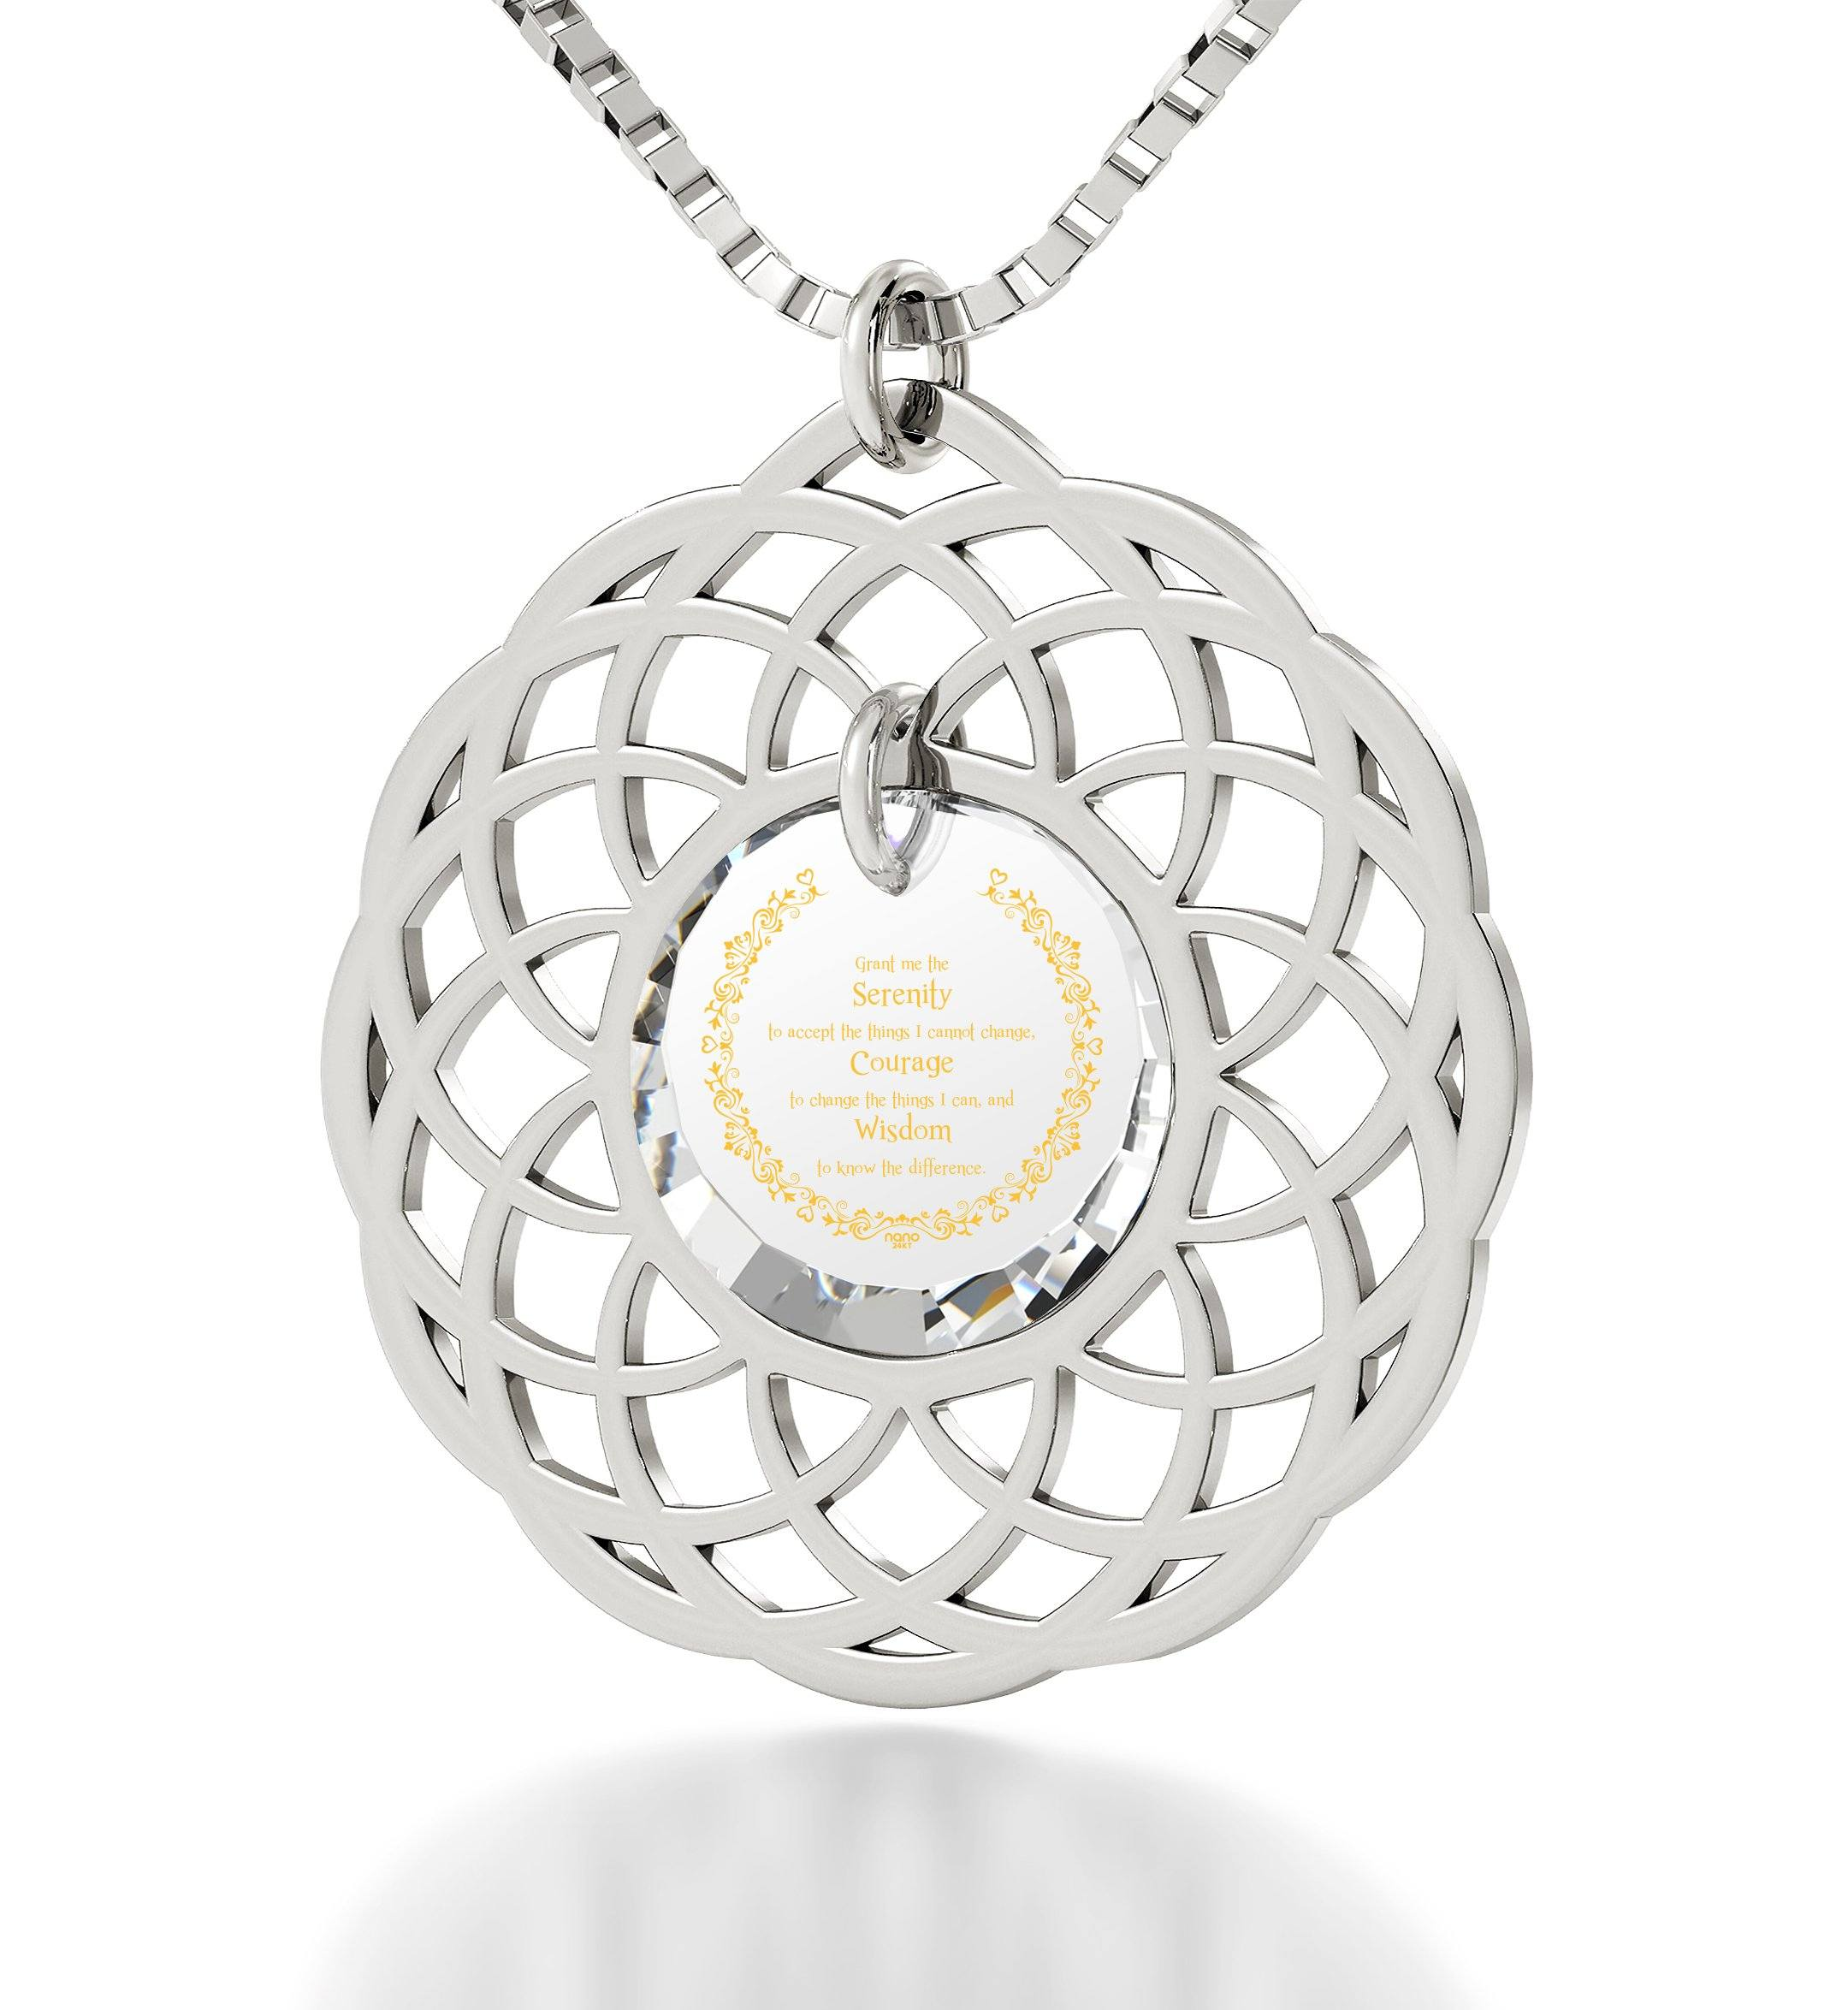 com prayer from necklace q c fishpond serenity buy online au original jewellery